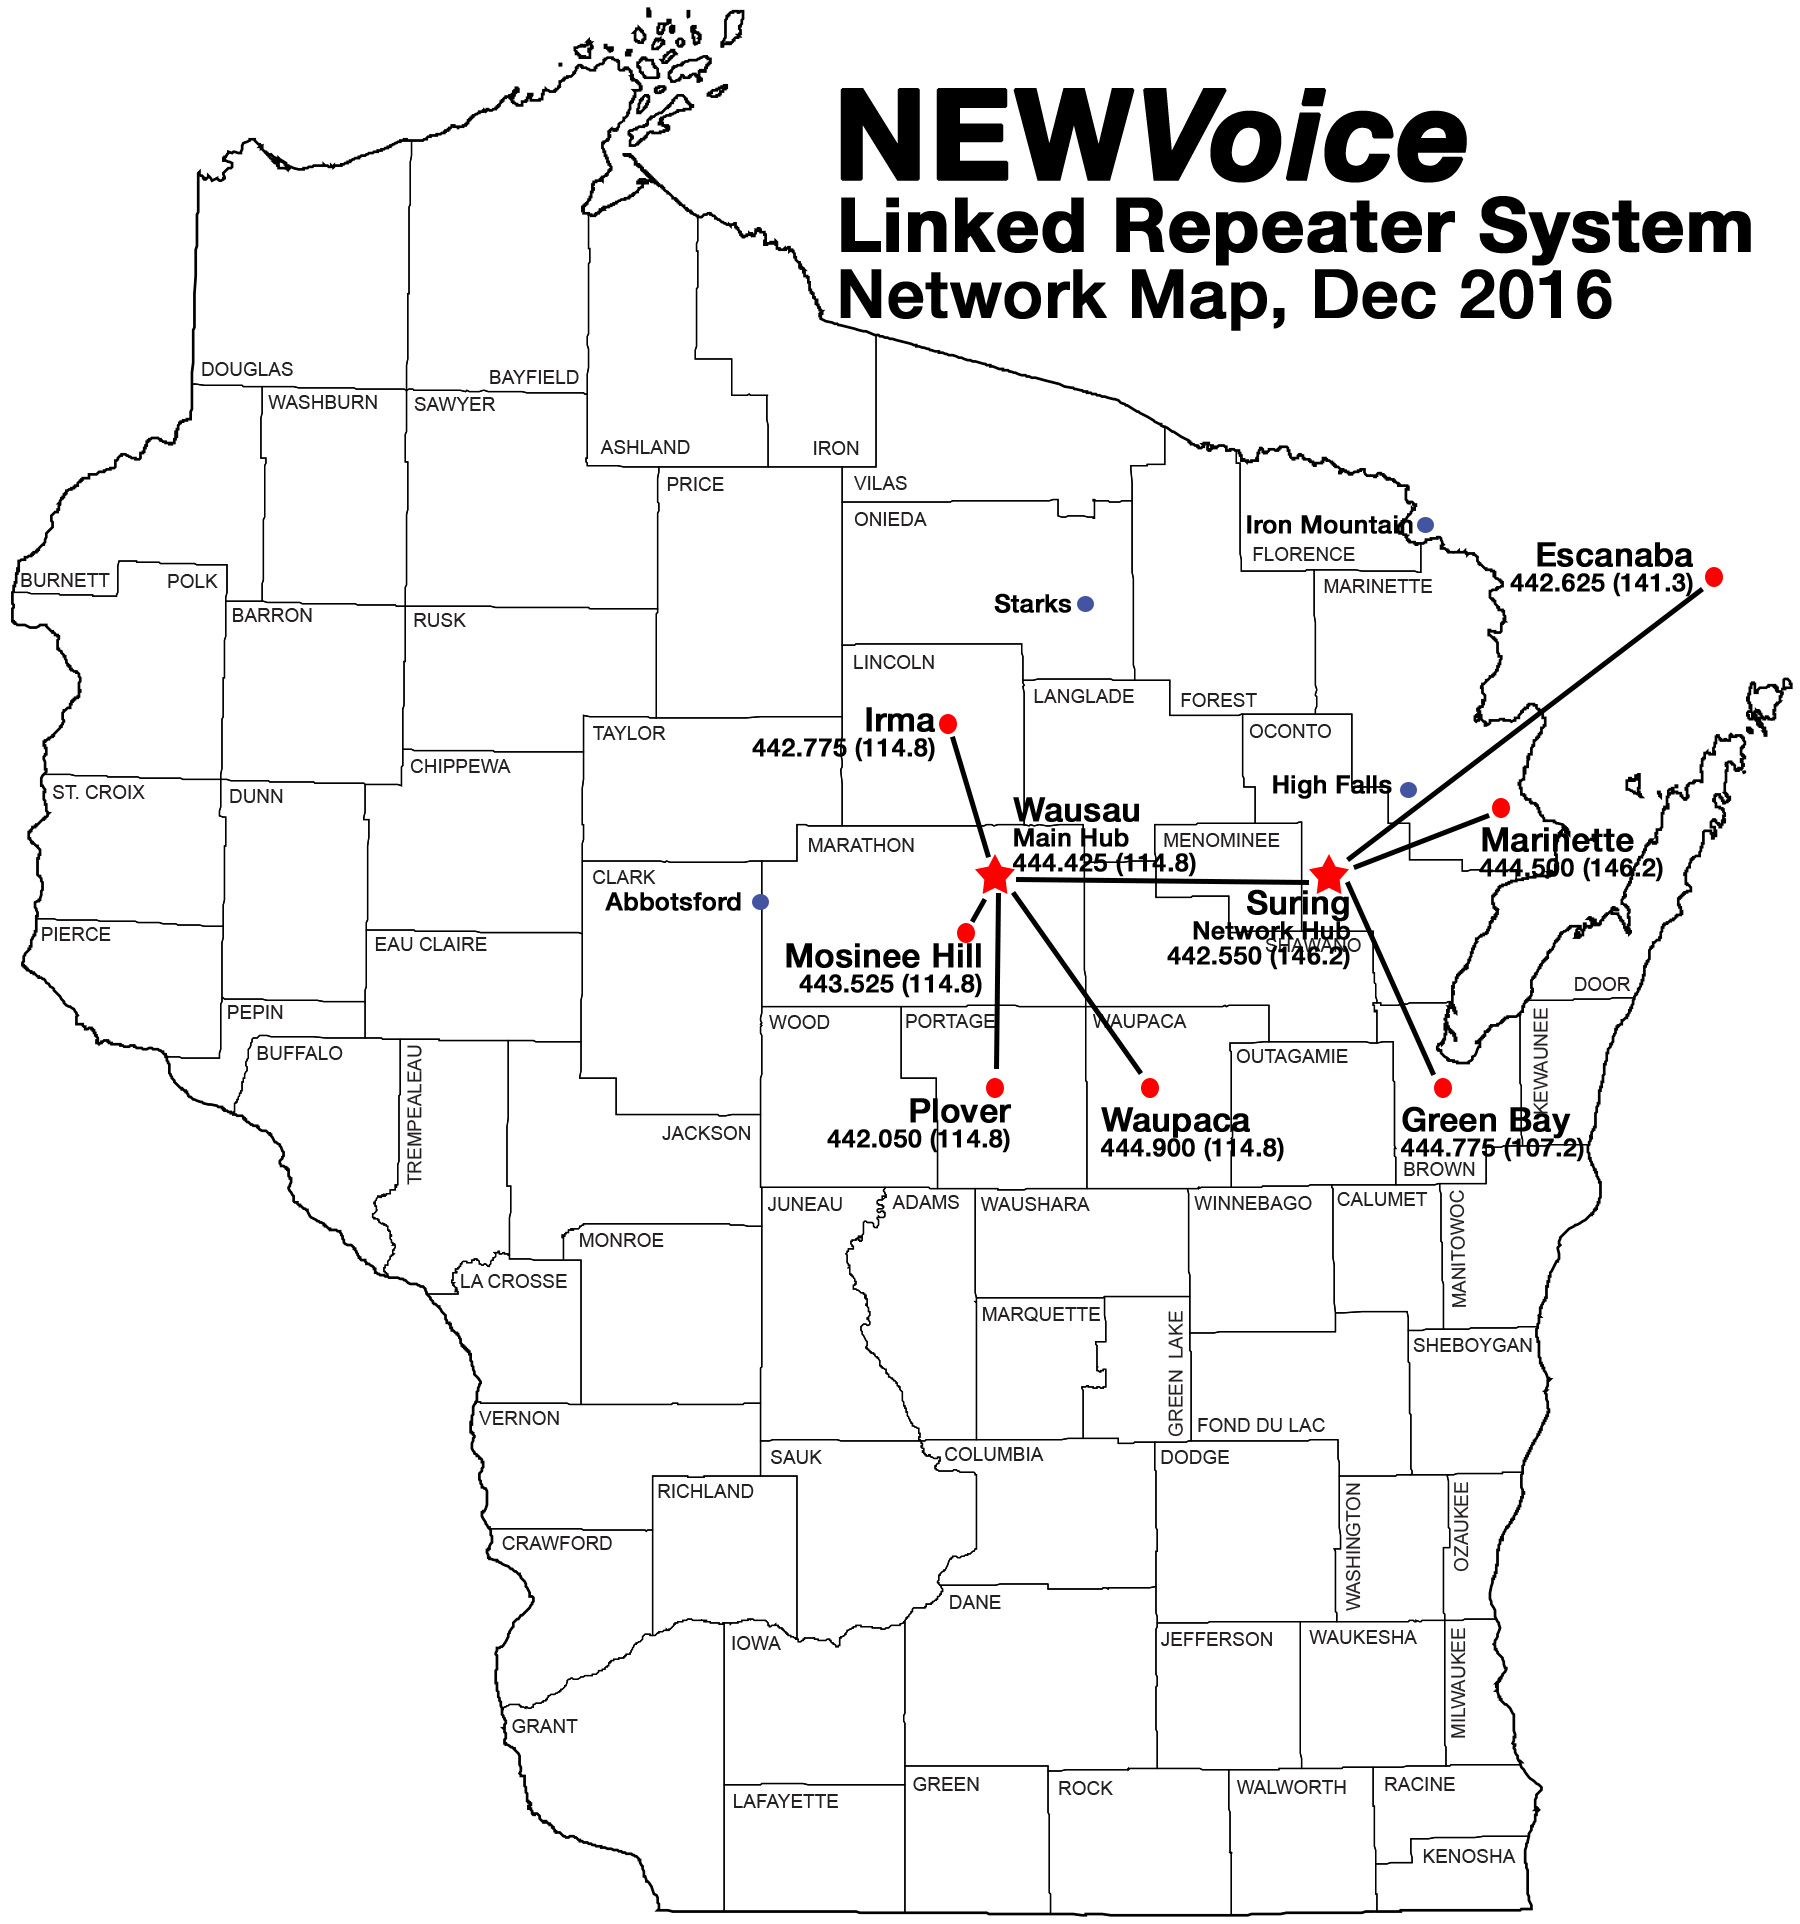 444 425+/442 050+/444 900+ (N E W  Voice system) | Wisconsin